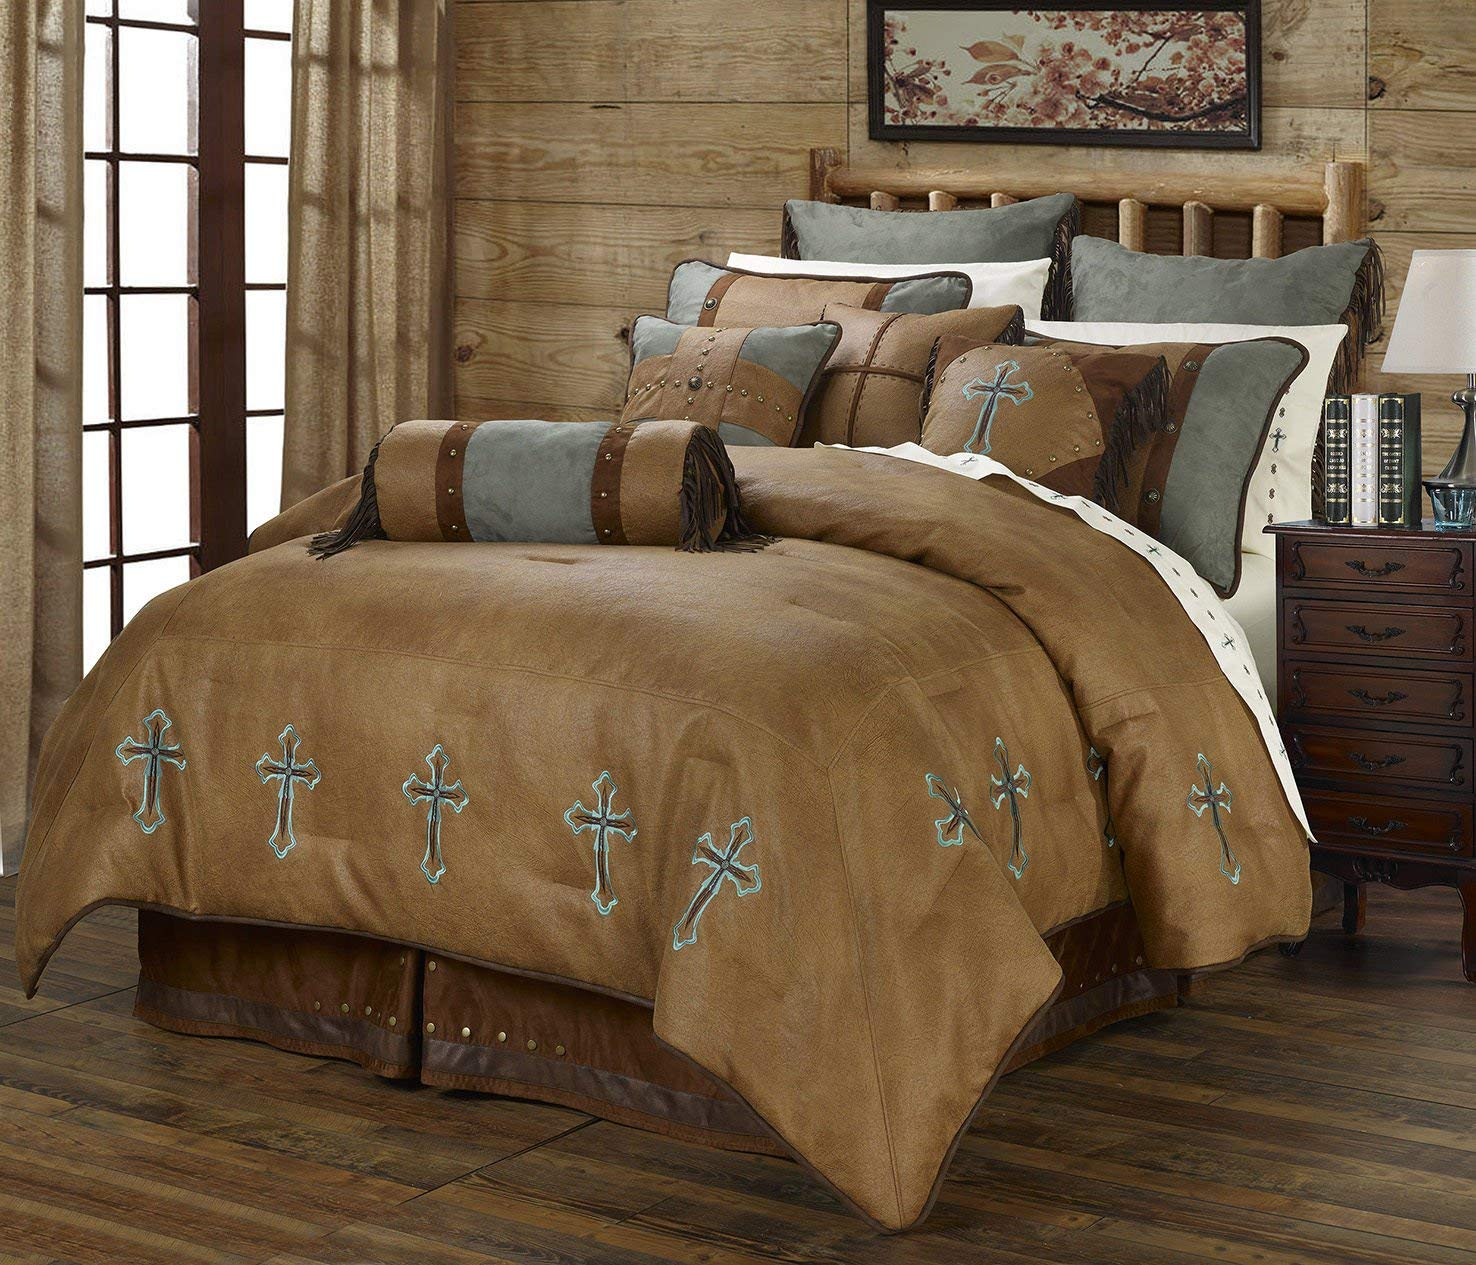 Cheap Super King Bedding Sale Find Deals On Rodeo Bundling 5 Get Quotations Turquoise Cross Western Piece Comforter Set Includes 1